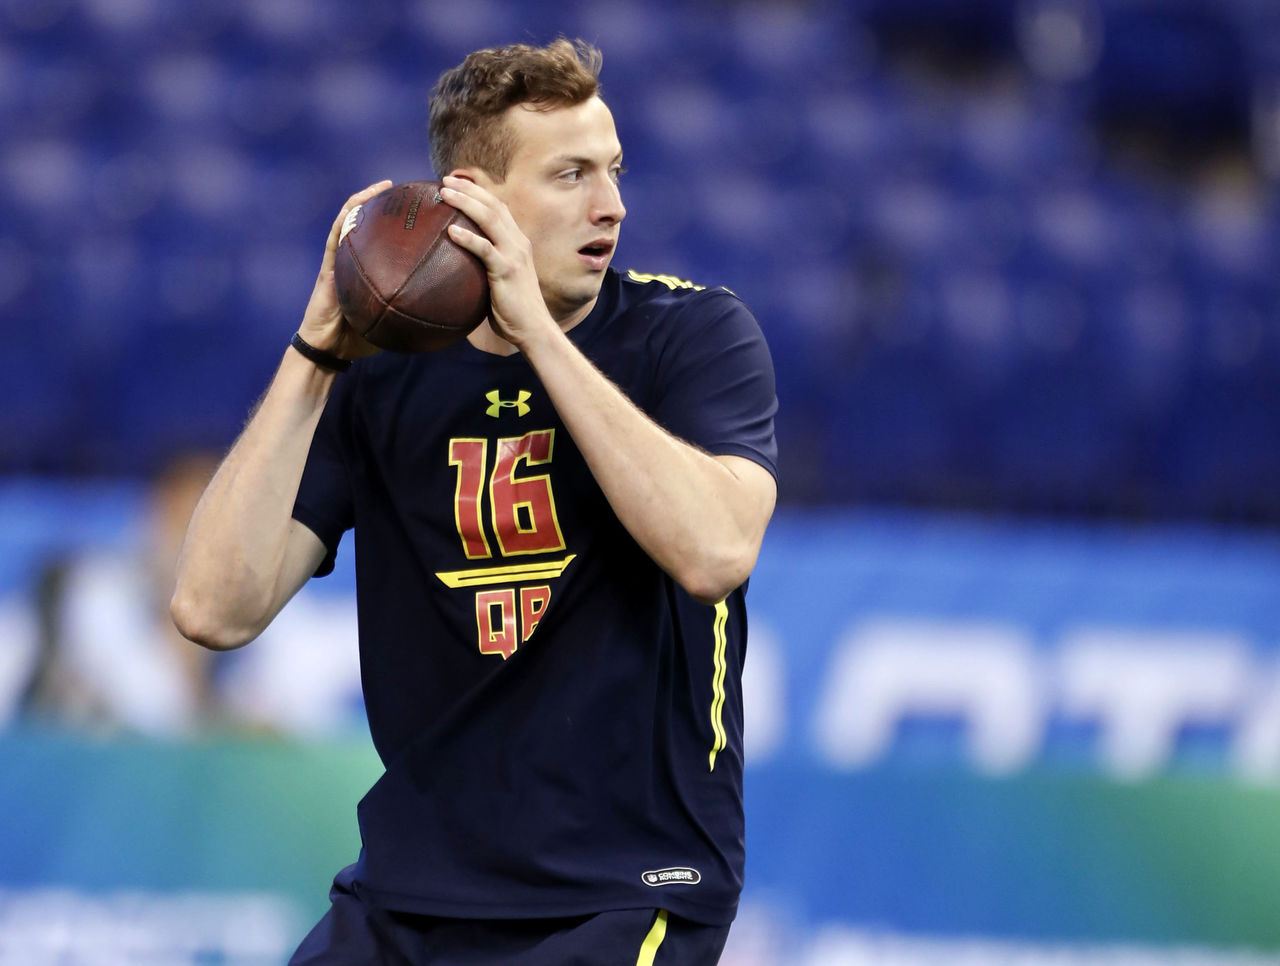 Cropped 2017 03 04t214731z 1725351062 nocid rtrmadp 3 nfl combine